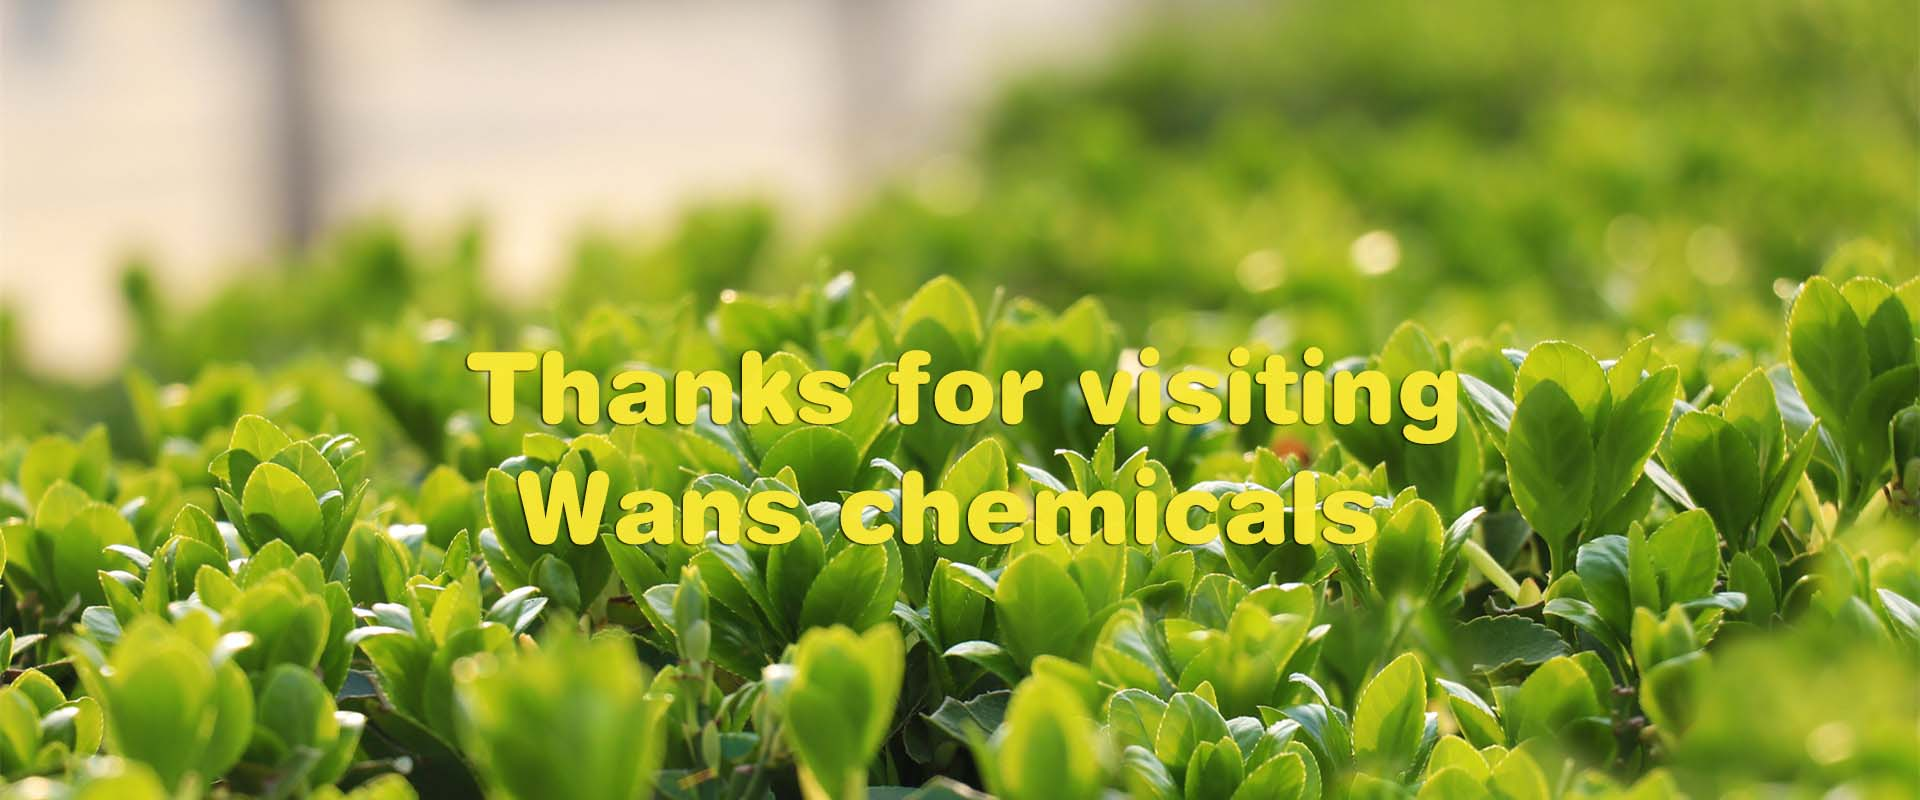 tanks for visiting wanschemicals